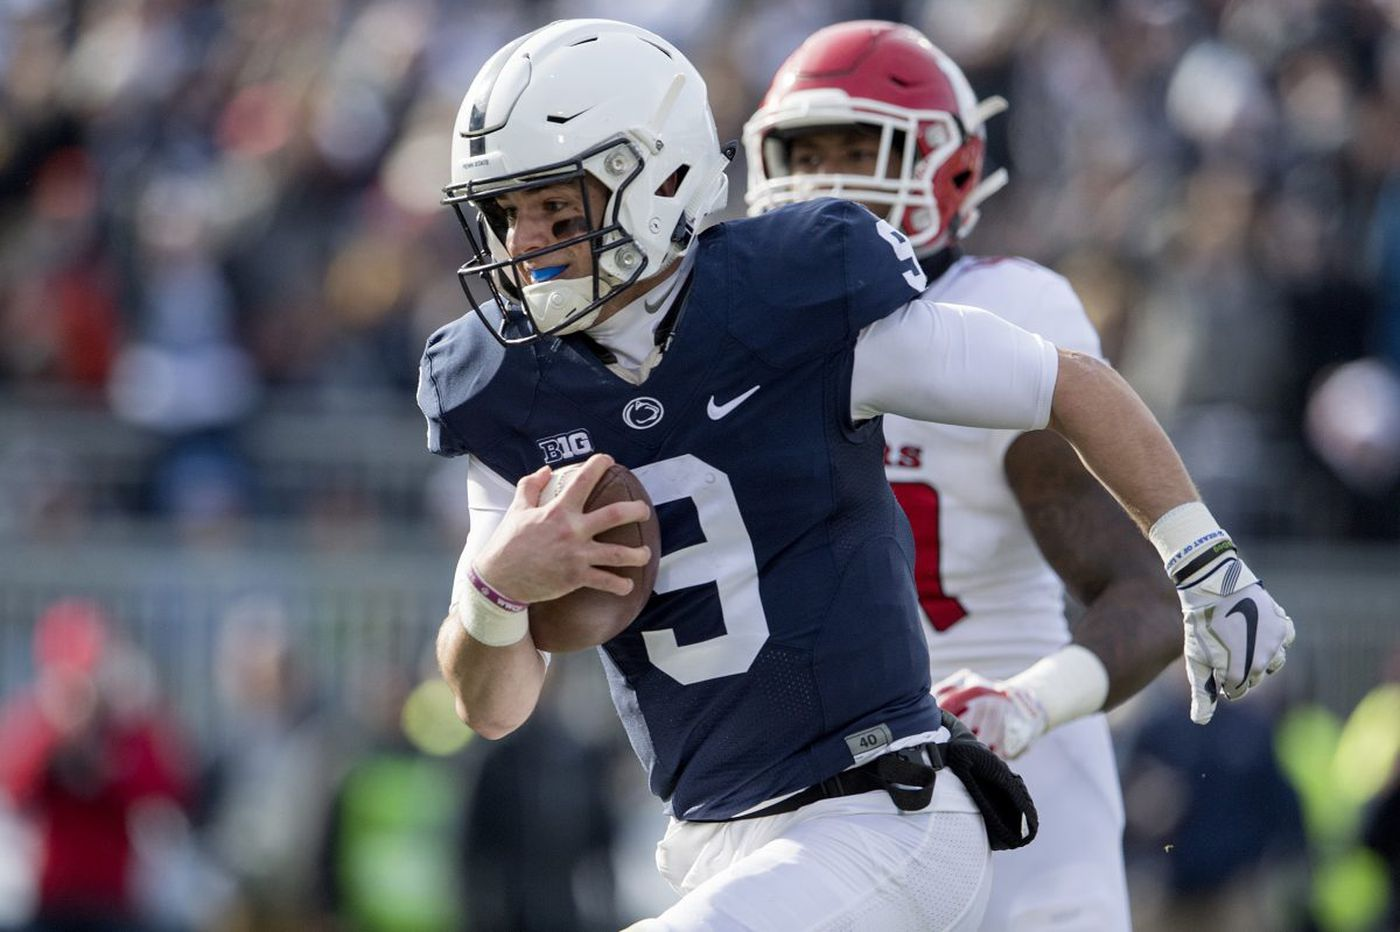 Trace McSorley, a junior, emotional about Penn State senior day